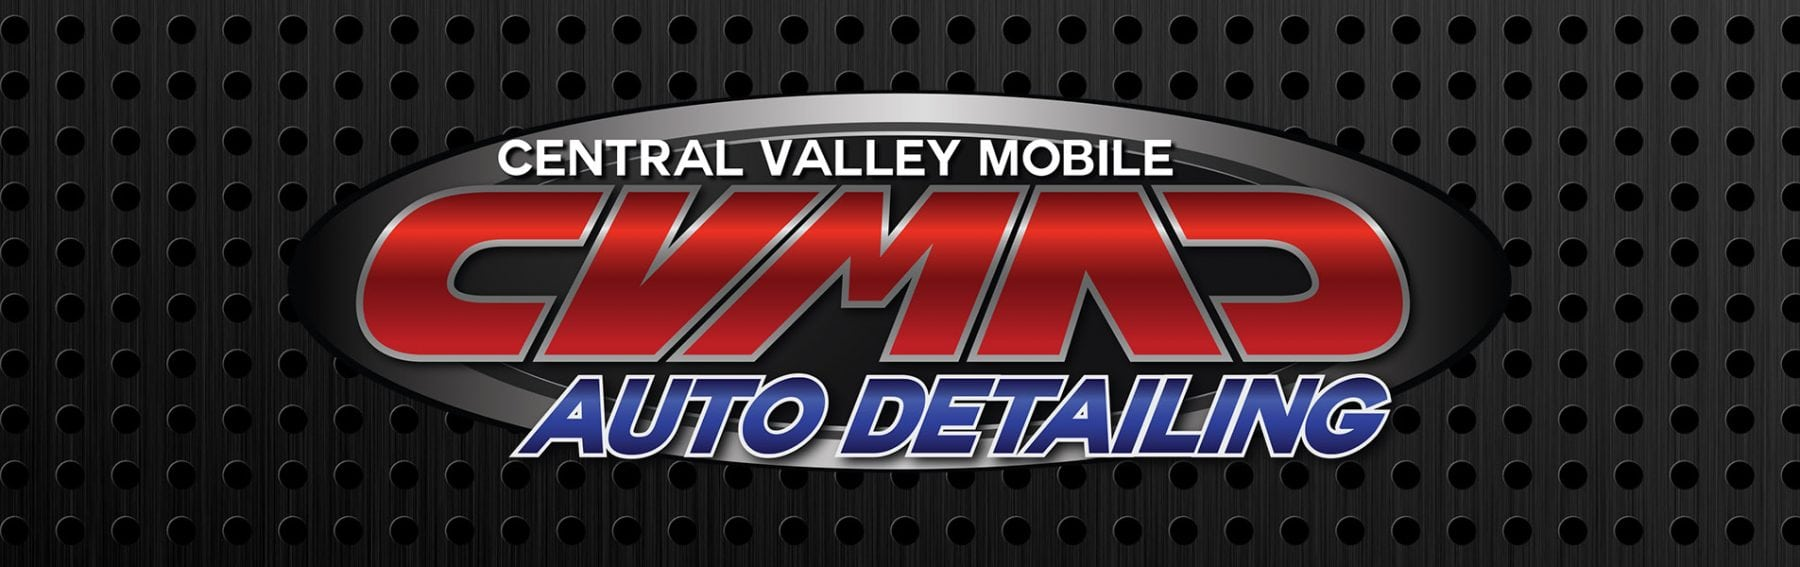 Central-Valley-Mobile-Auto-Detailing-Home-Page